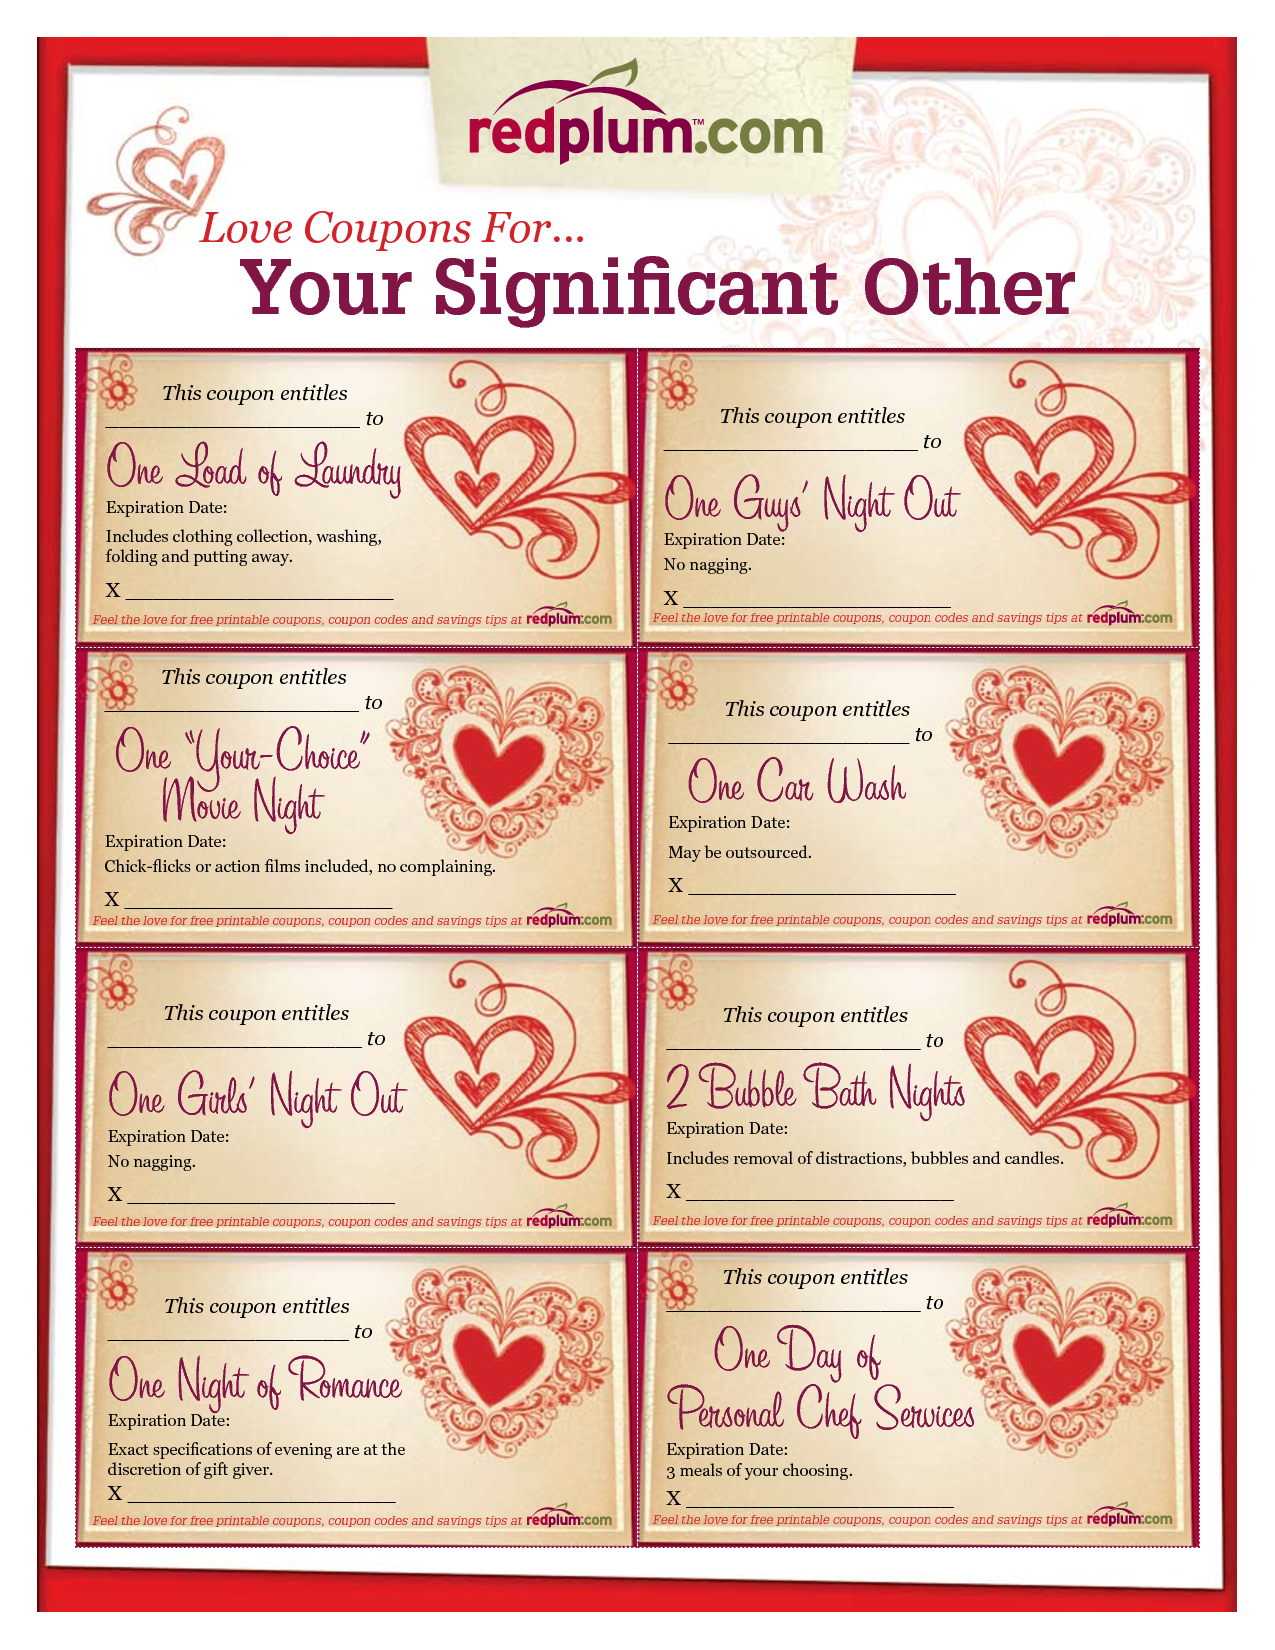 Romantic Love Coupon Template Printable | Love Coupons For Your Significant  Other   RedPlum.com  Free Coupon Template Word